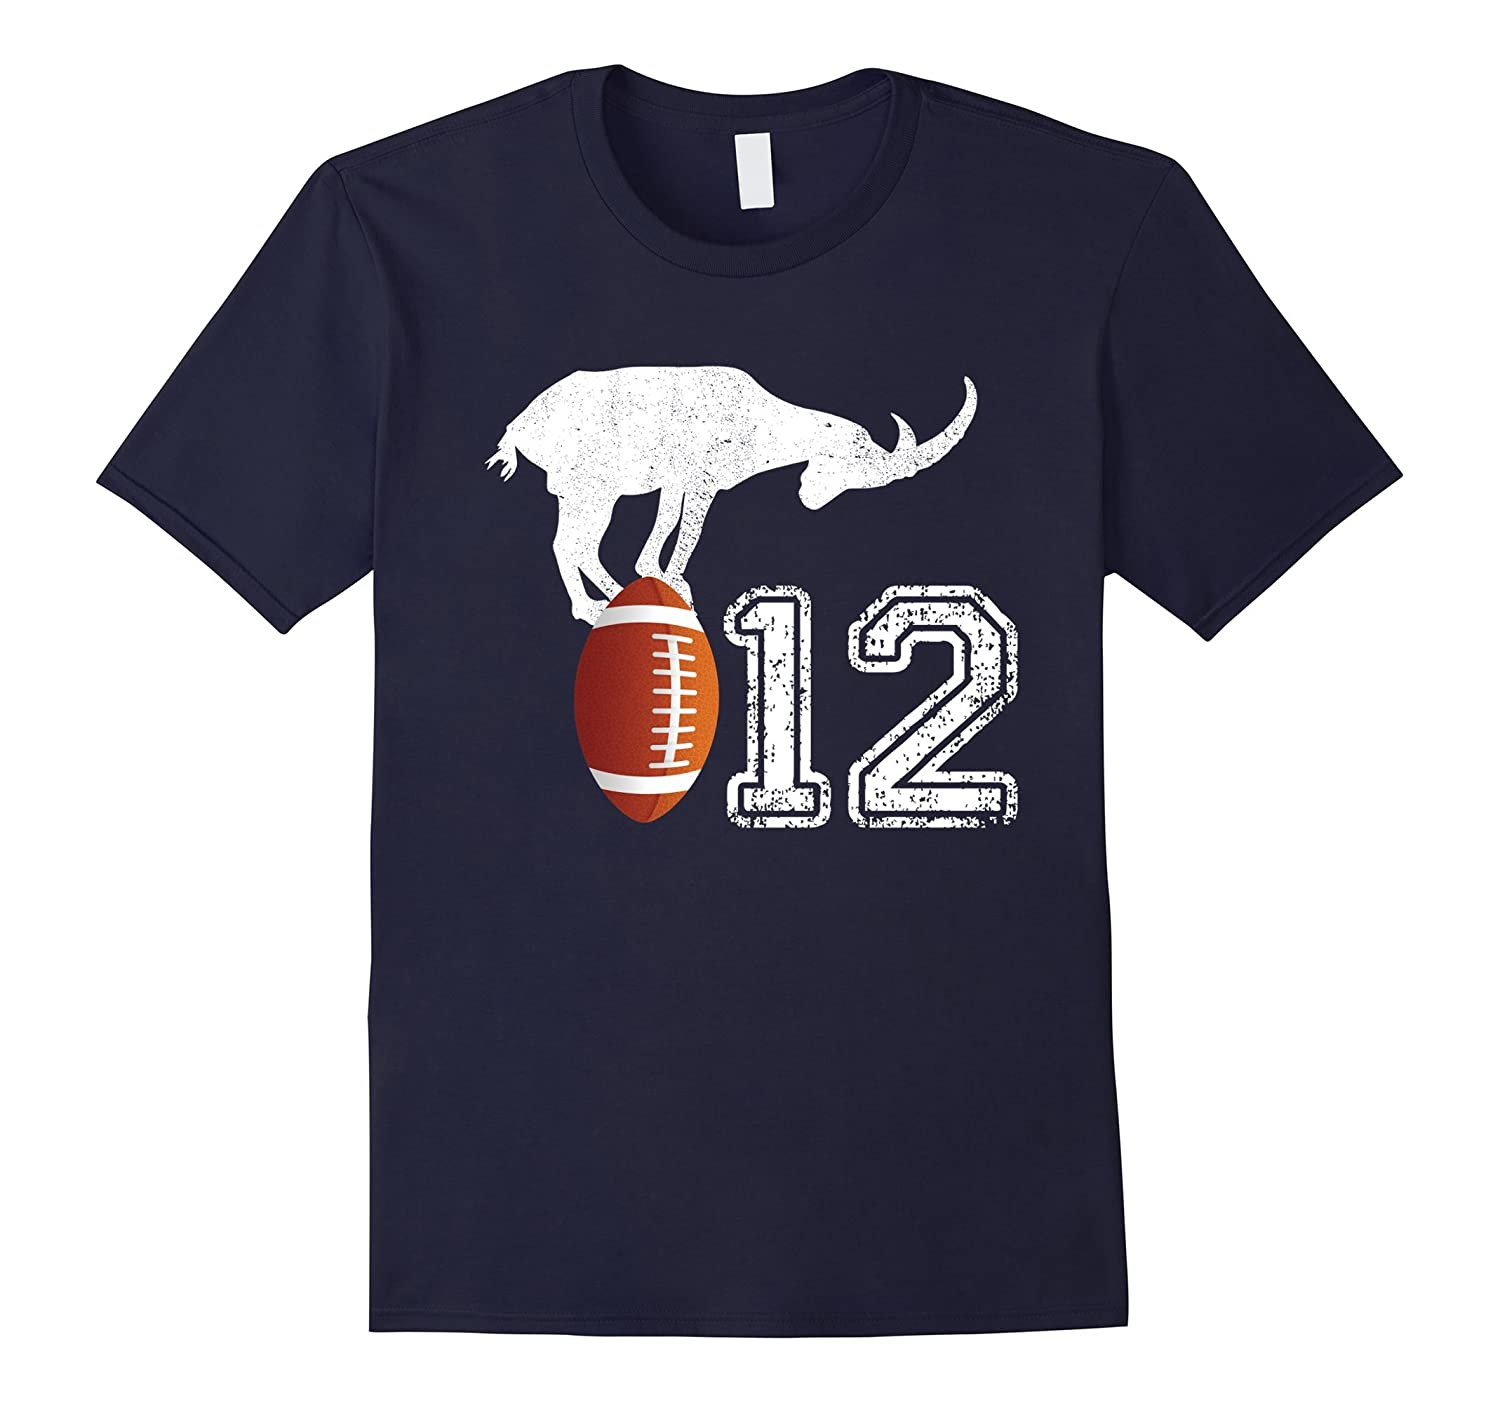 # 12 Vintage Goat T-Shirt - The Greatest Of All Time Te-Rose